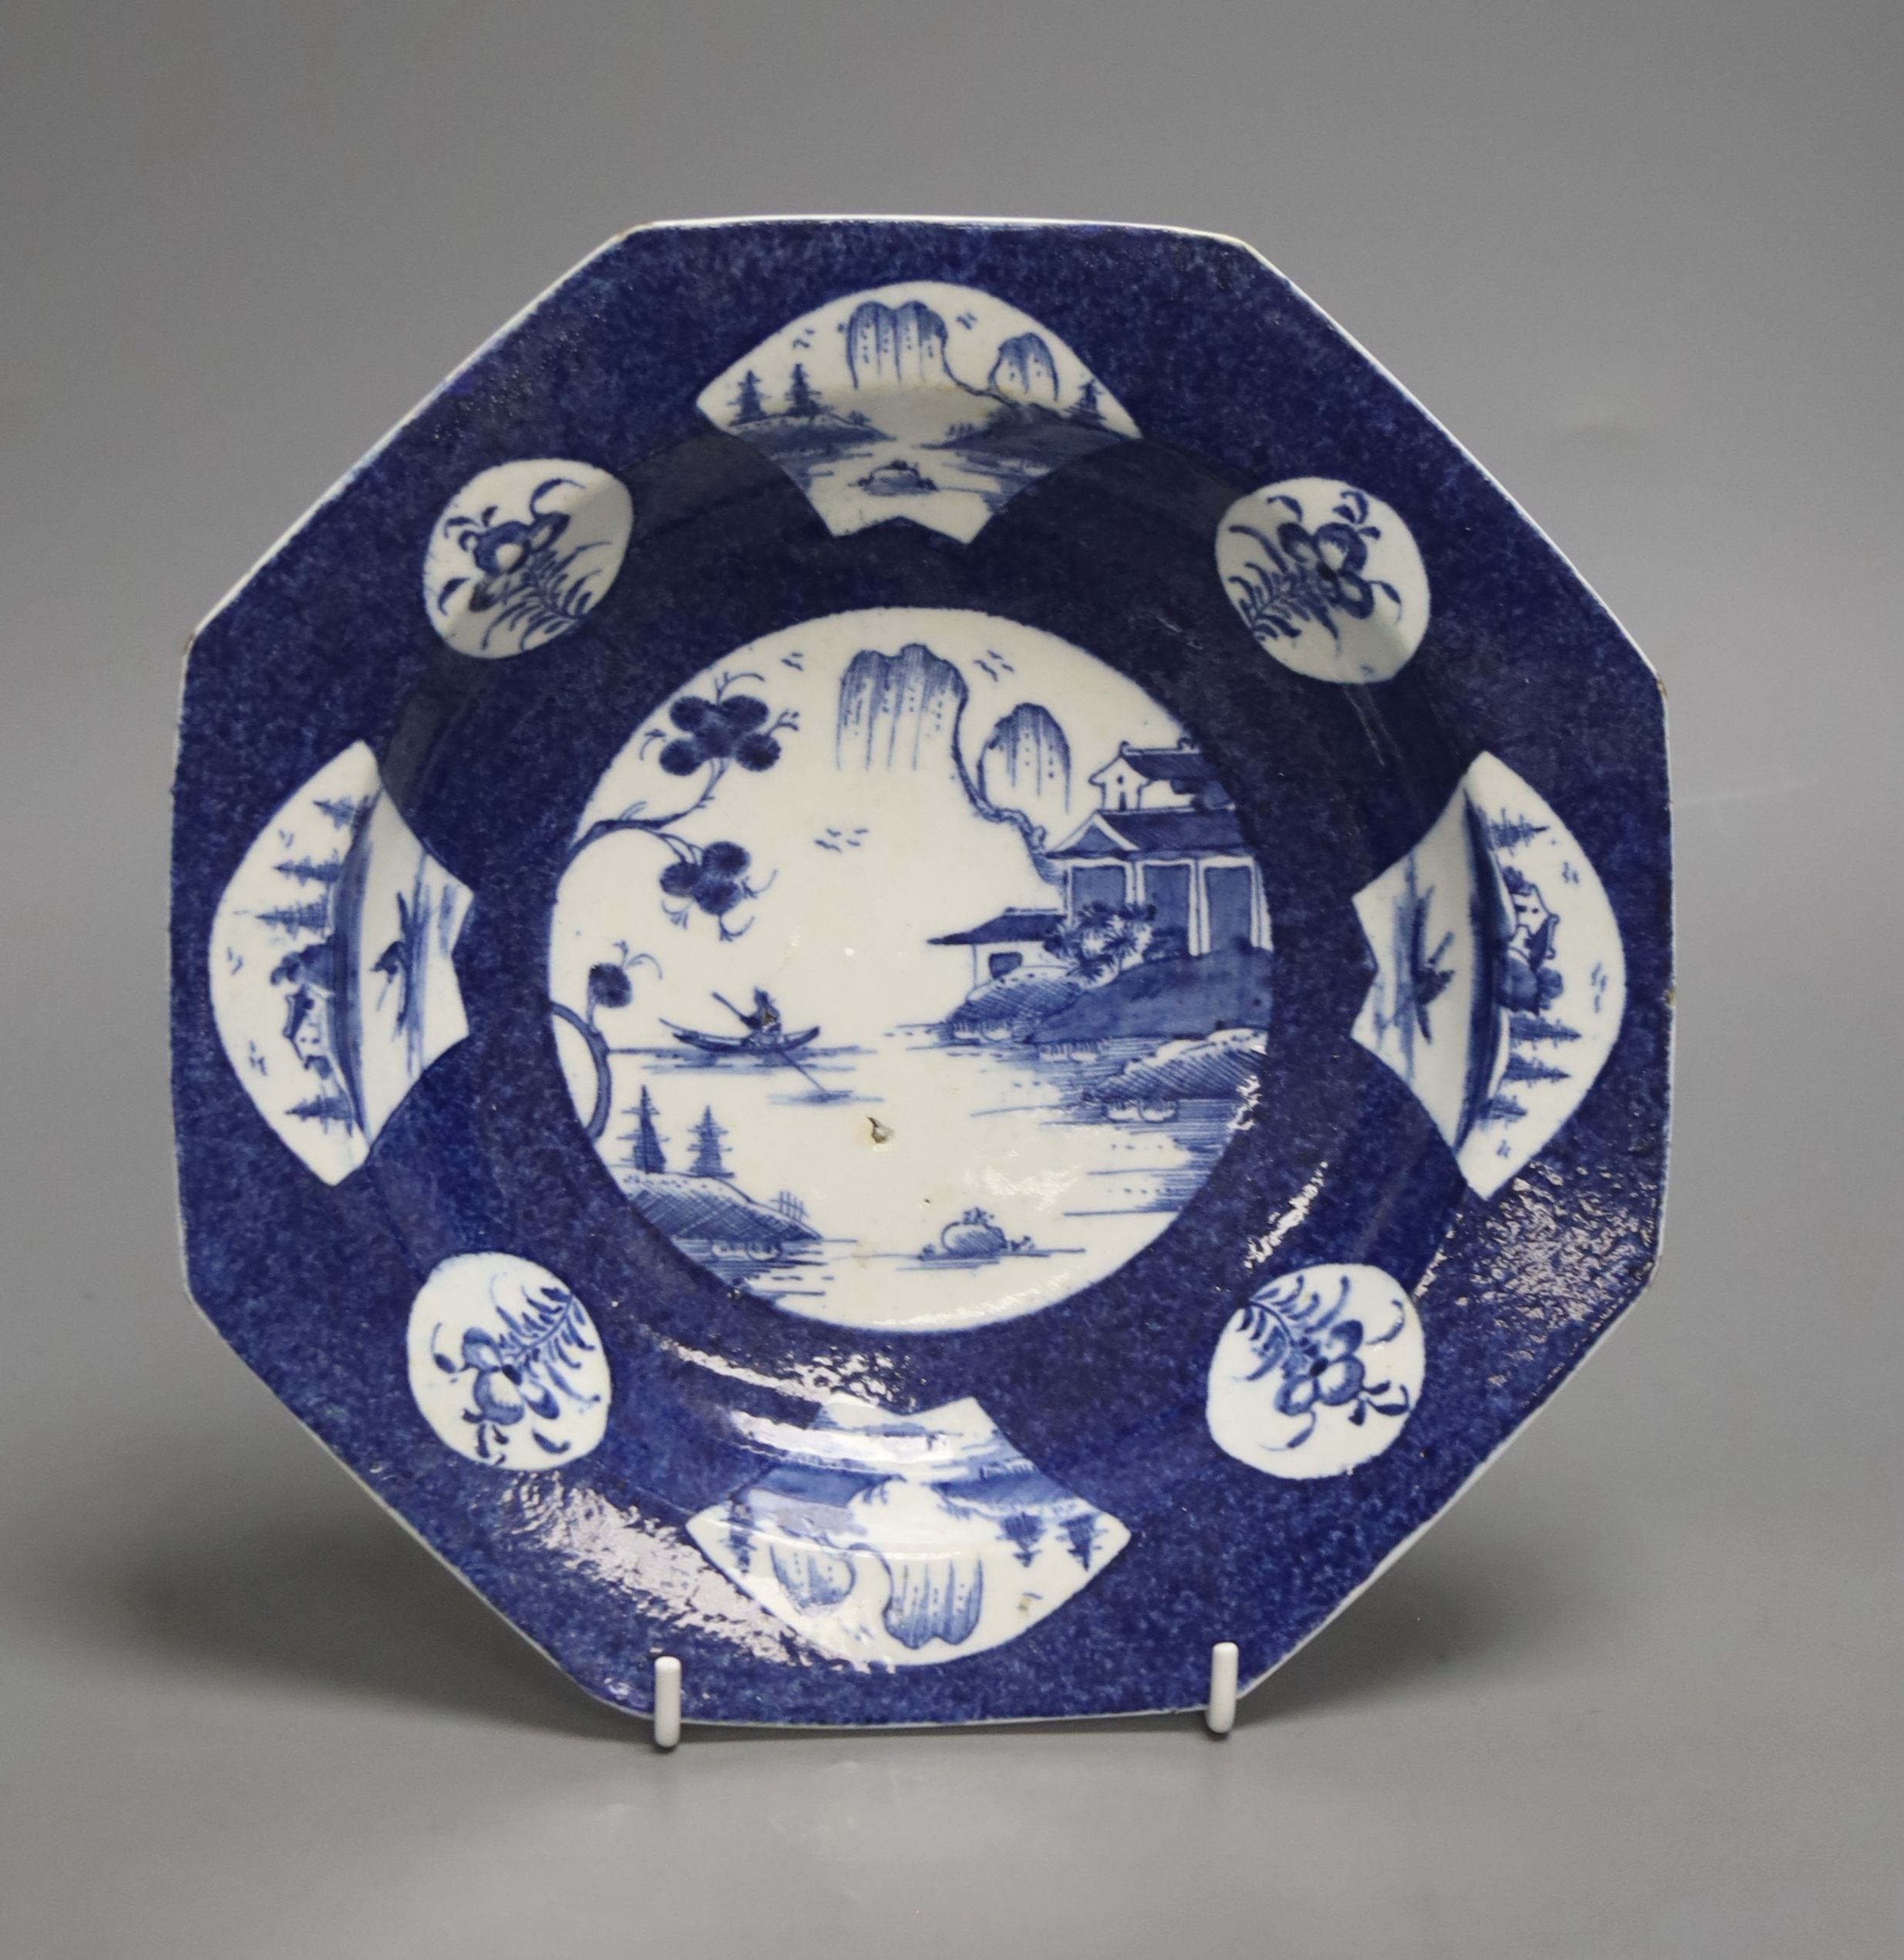 A Bow octagonal plate, painted with landscapes on a blue ground, c.1757, six character mark, 22cm